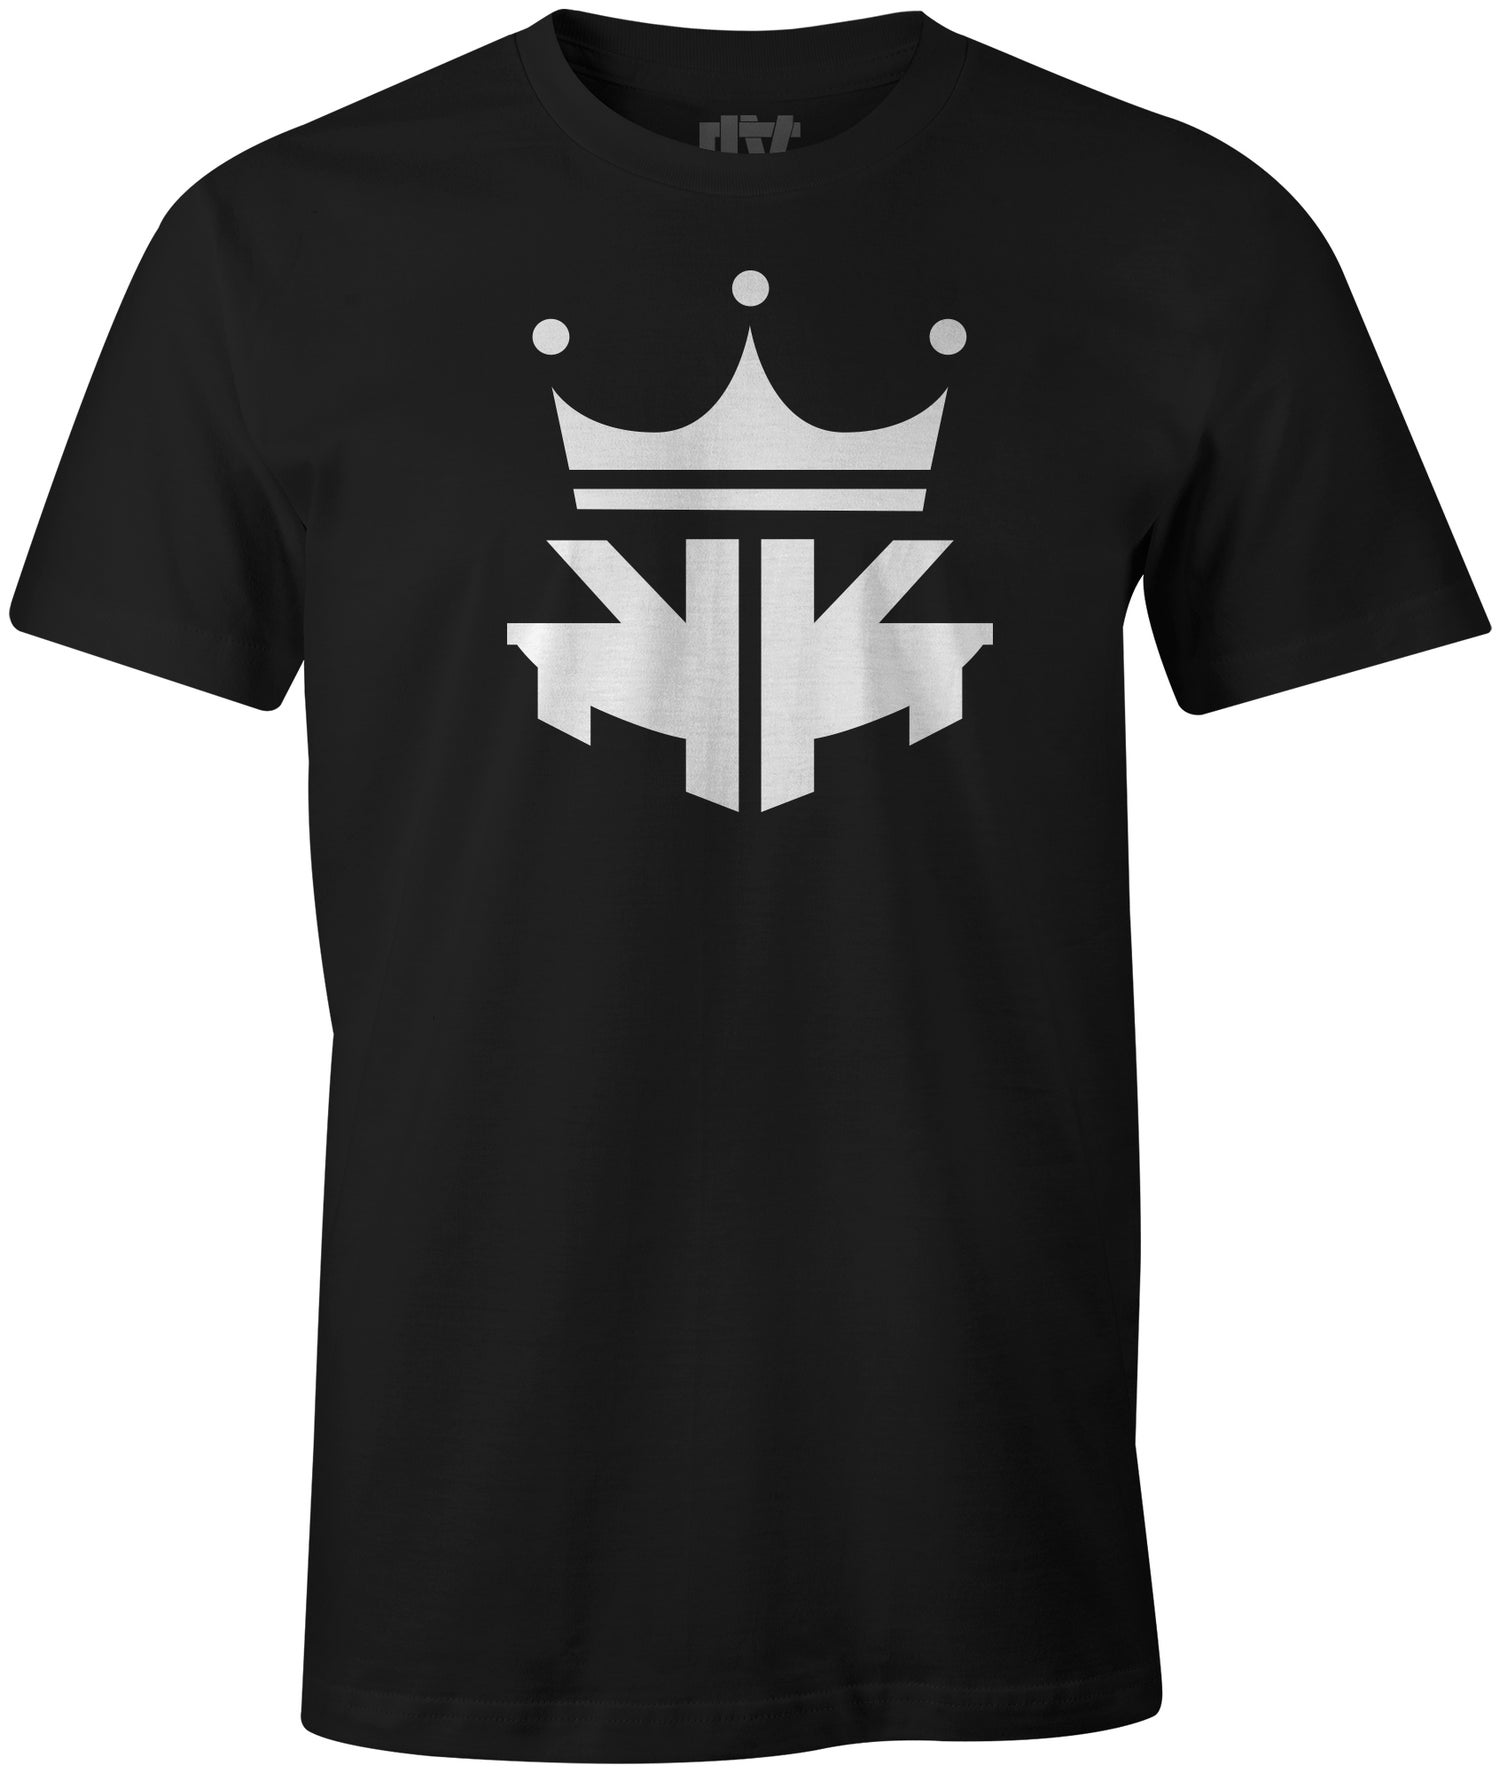 Image of Kava Kingdom Logo Tshirt